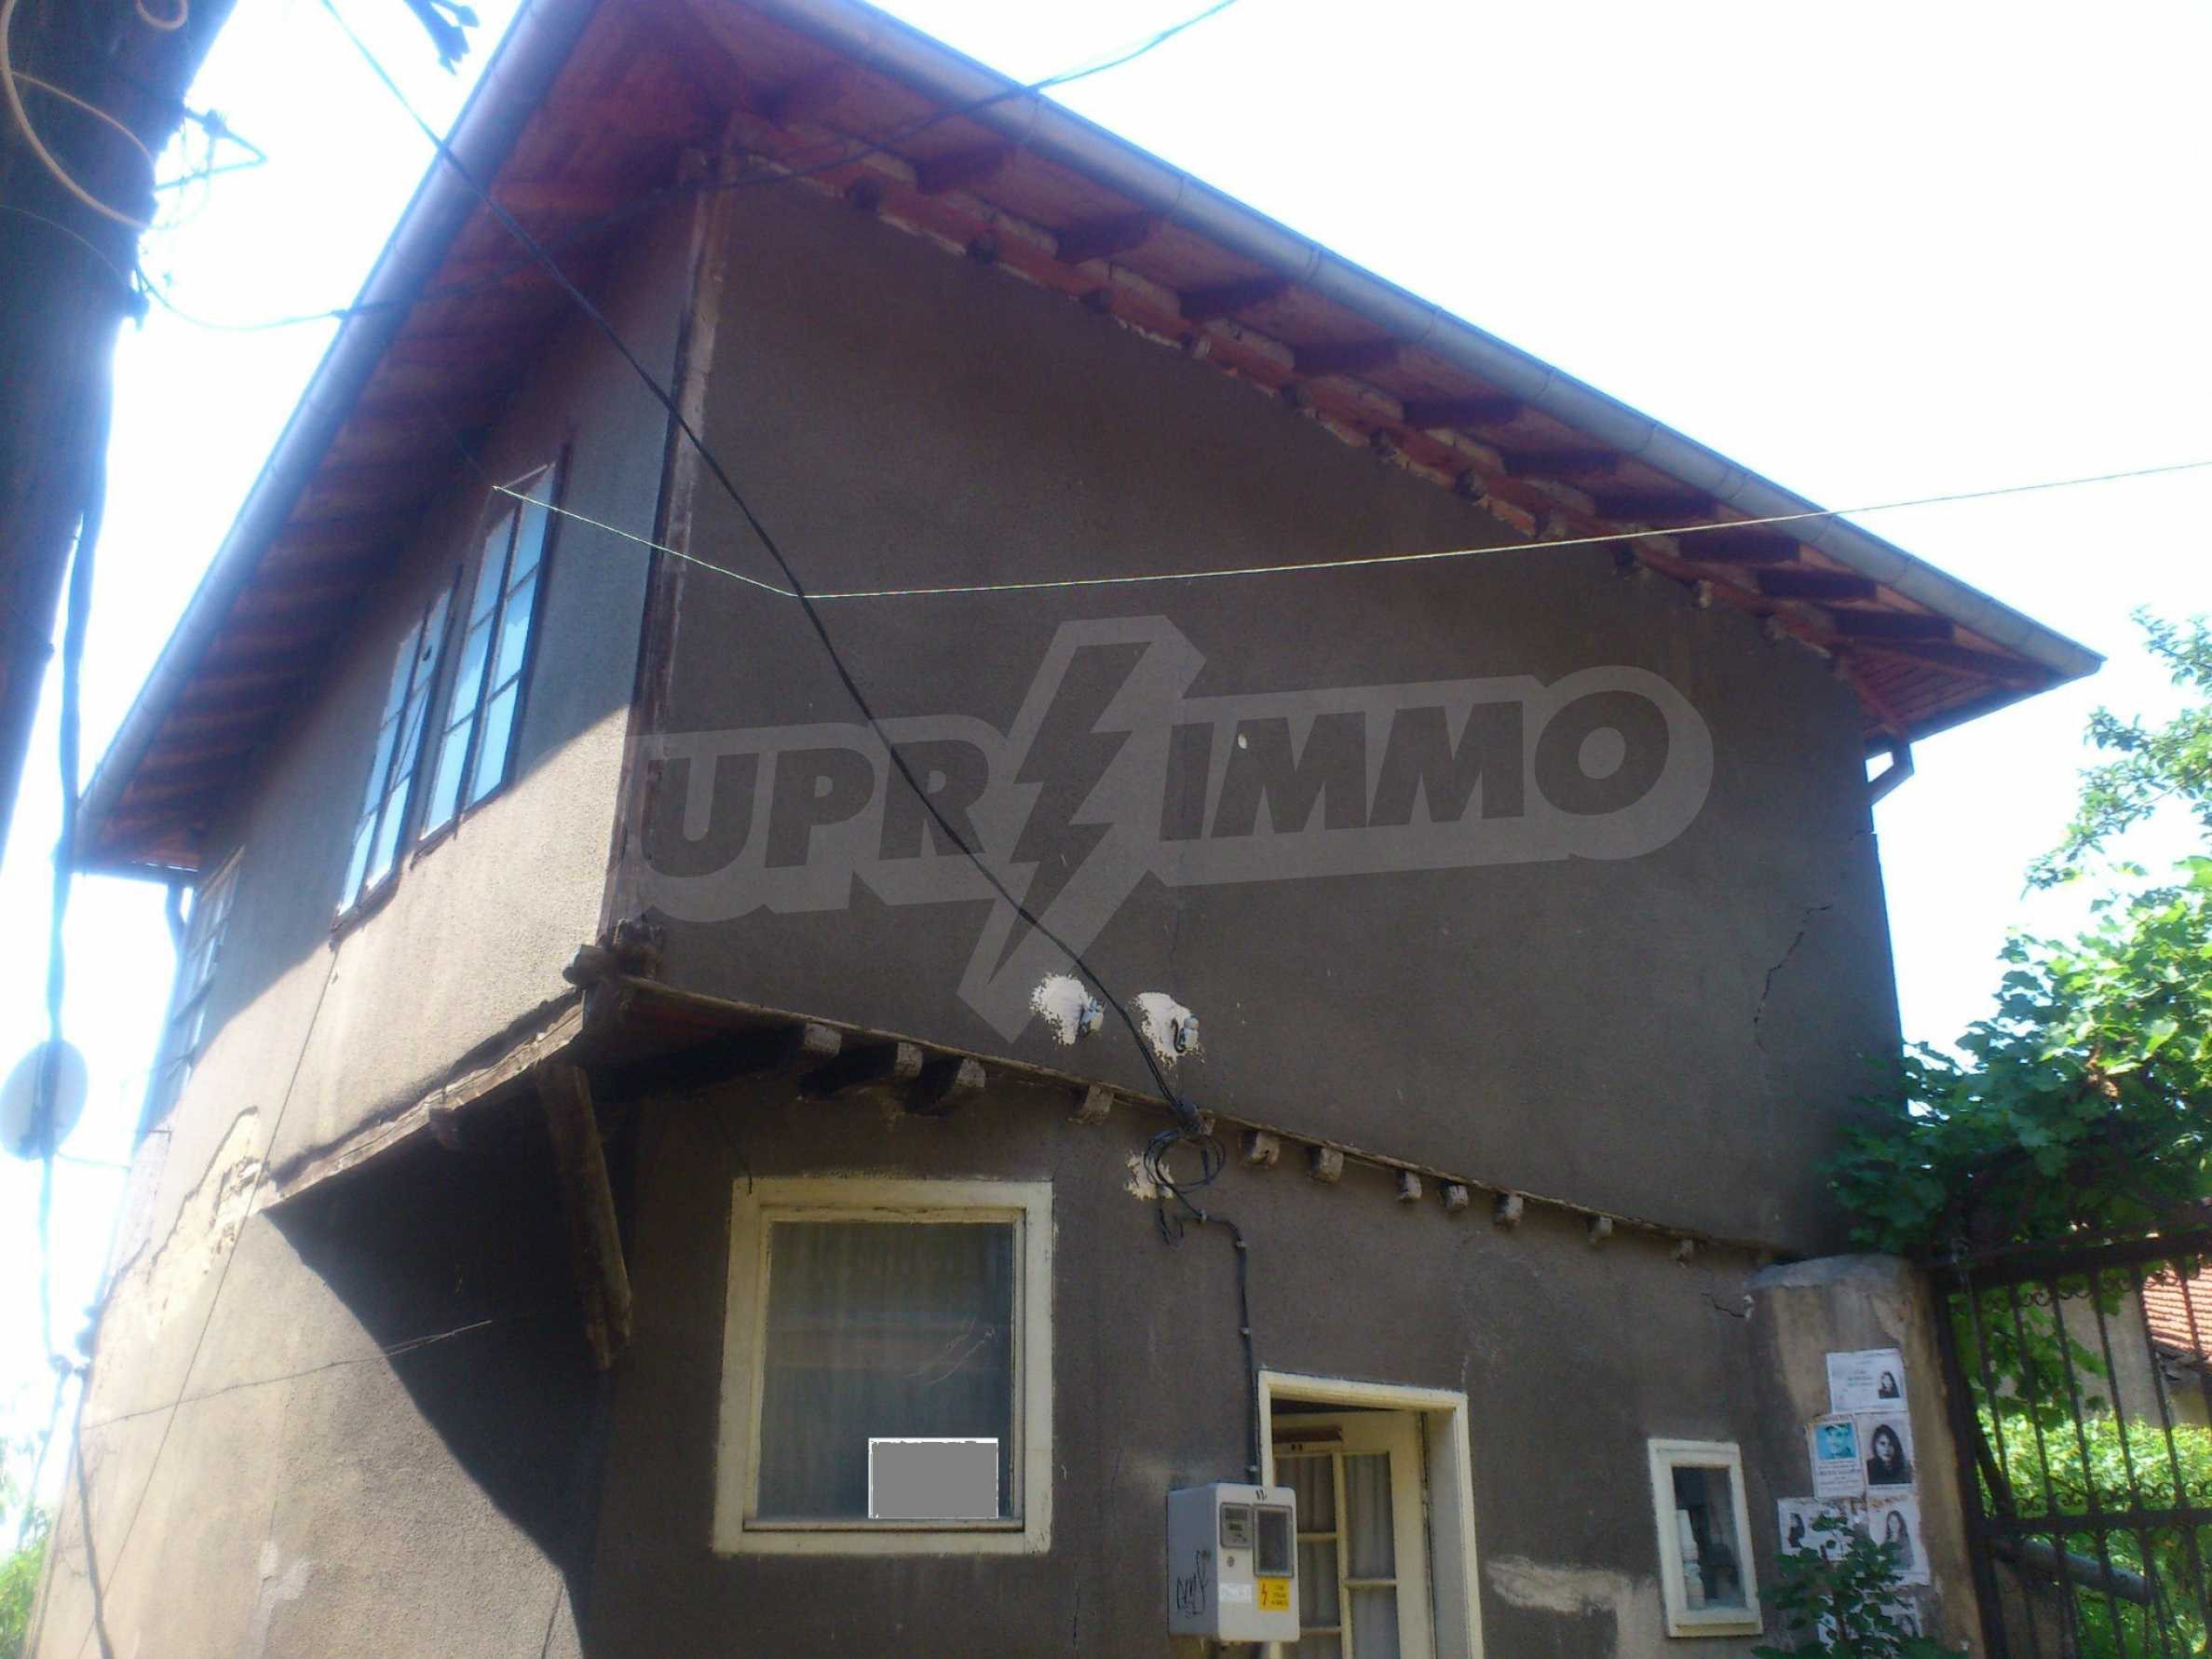 Traditional, spacious house located in the old part of Veliko Tarnovo 9